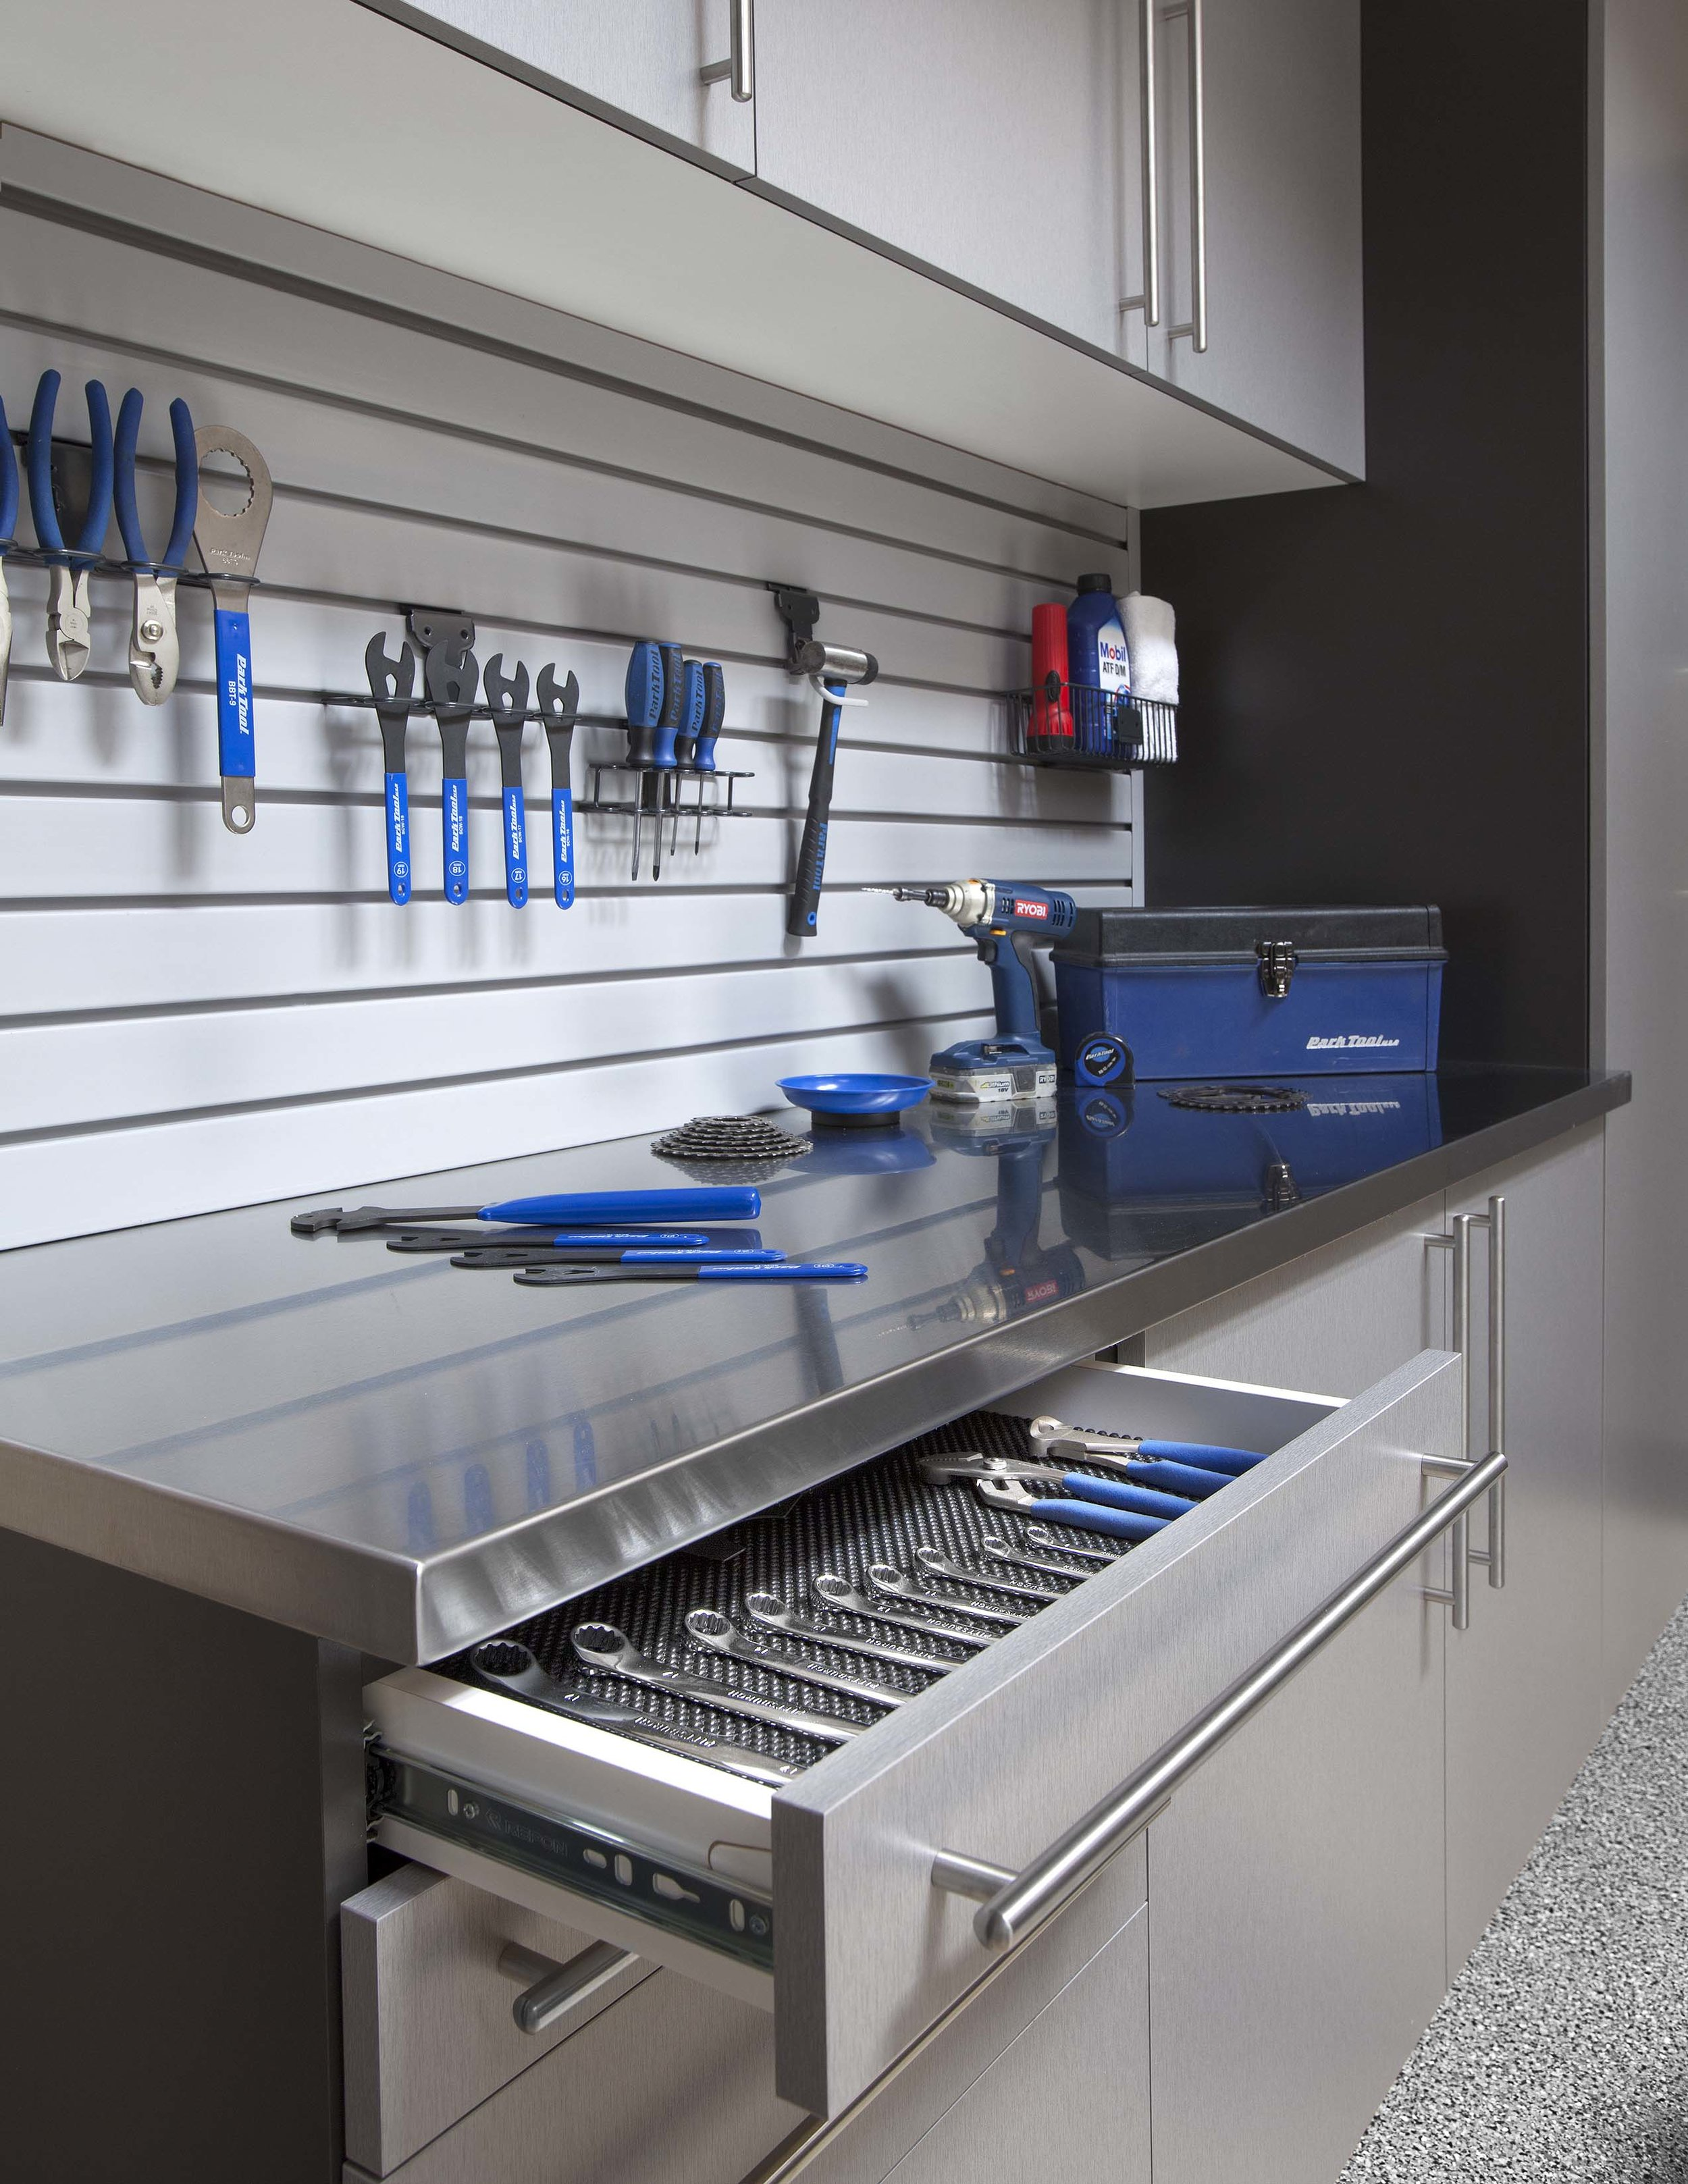 Slatwall tool storage completes a custom tool cabinet.  Call Closets of Tulsa  today for a FREE consultation and 3-D garage design:  918.609.0214